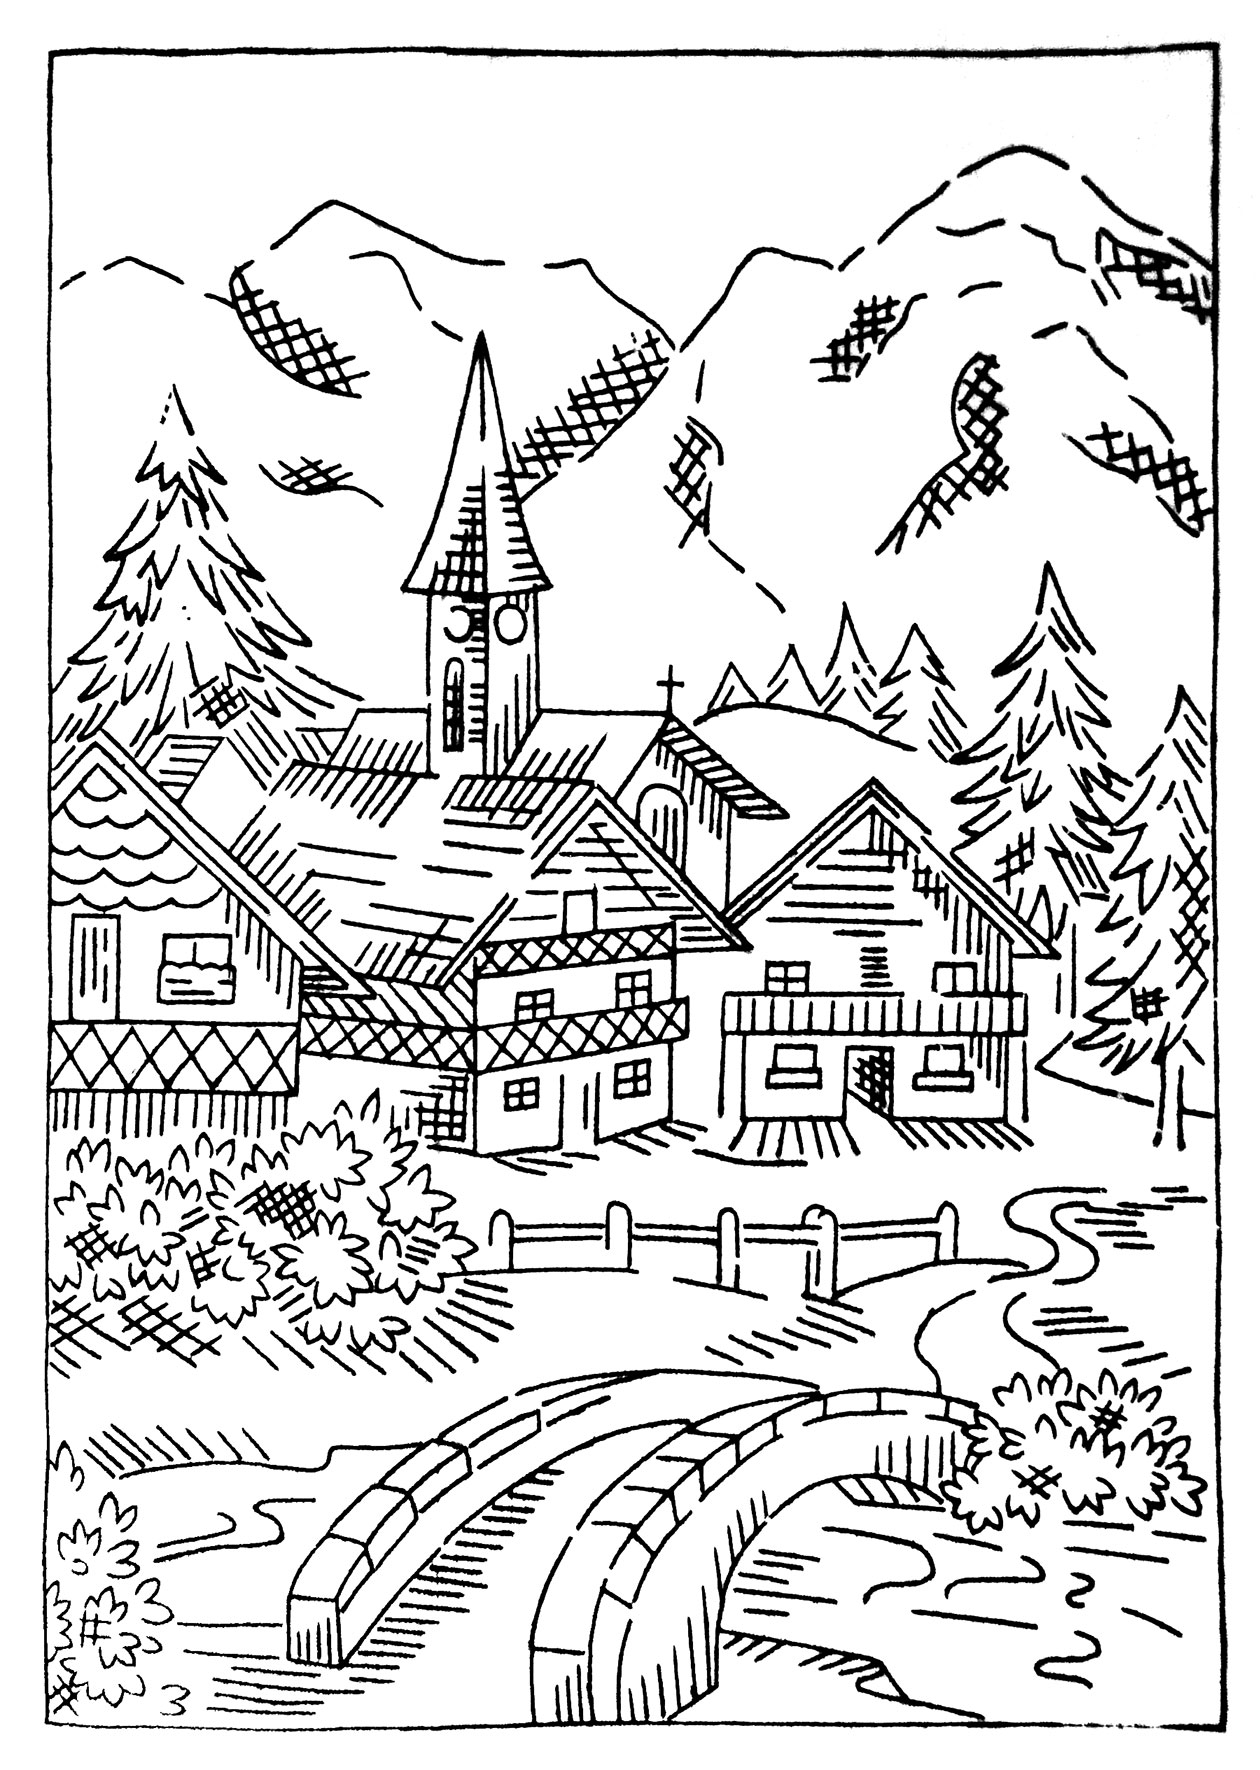 my village pictures coloring pages - photo#1